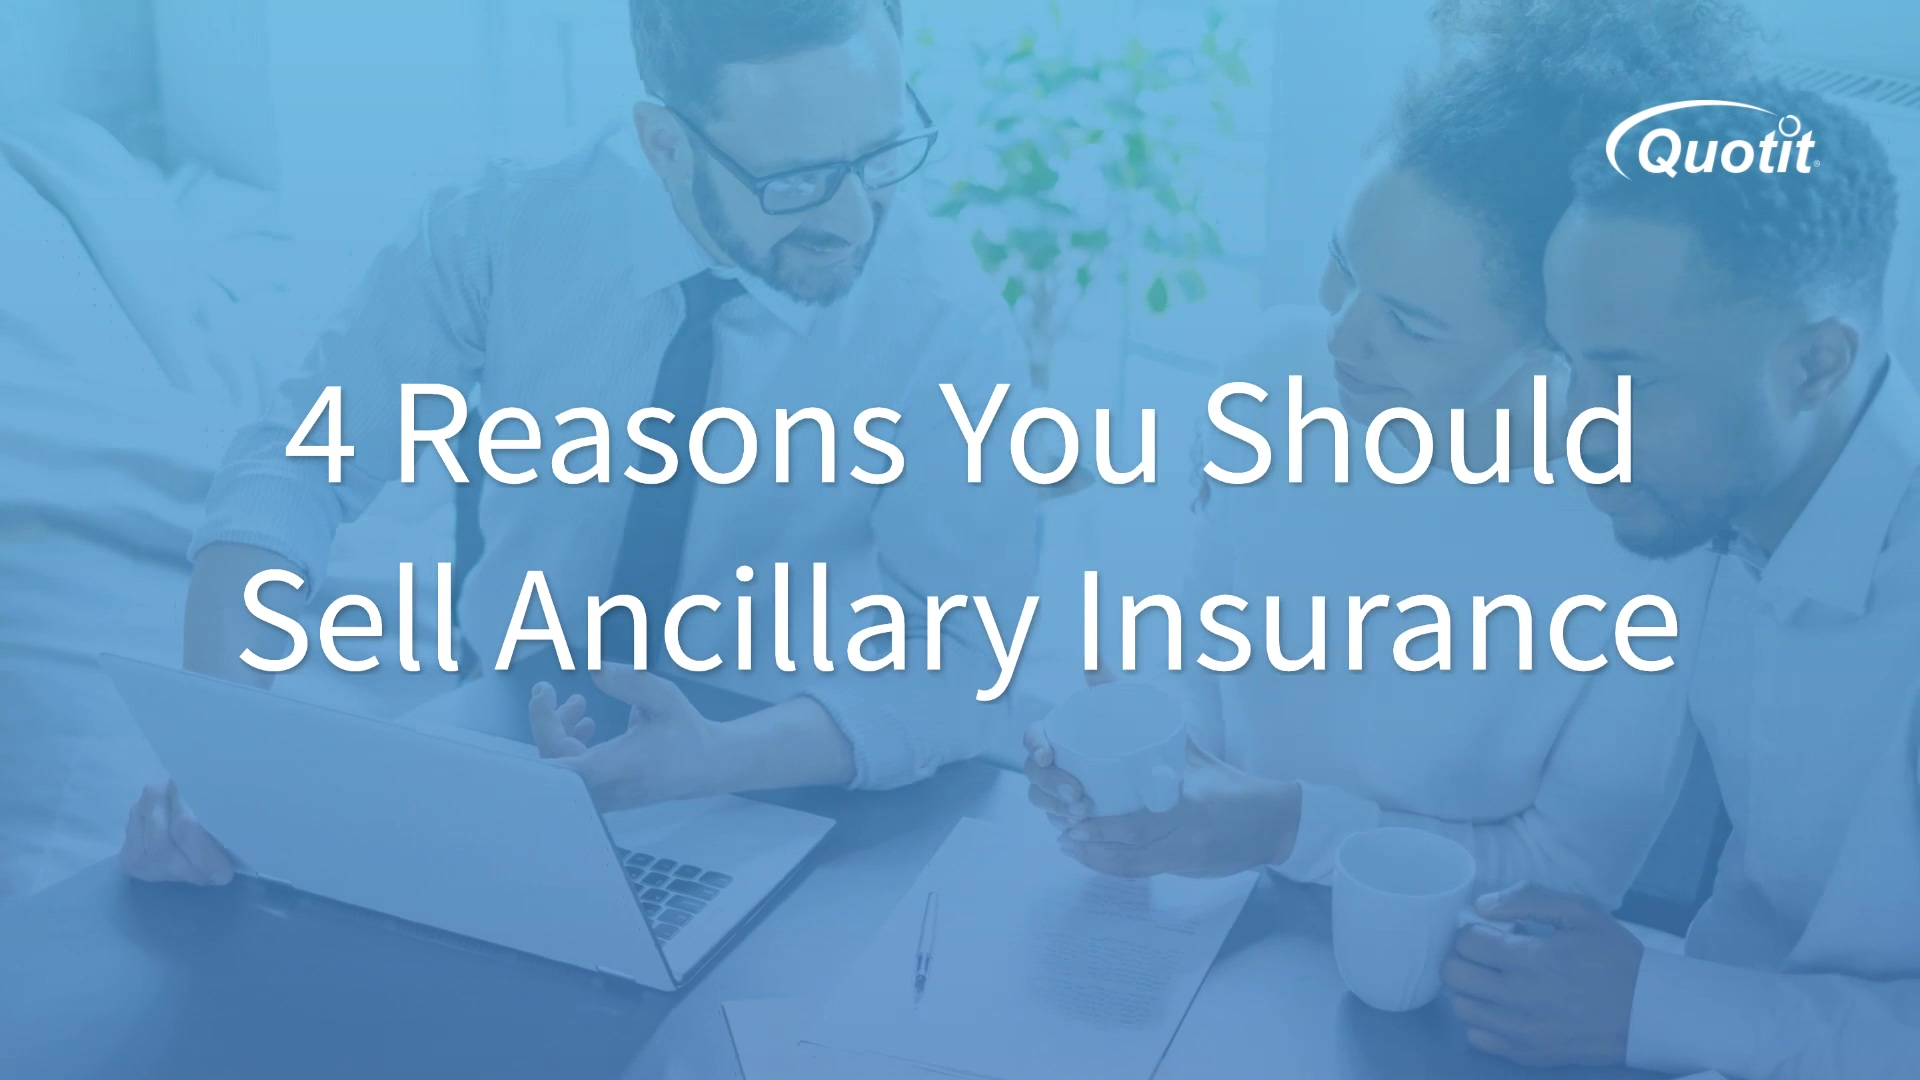 Quotit   4-Reasons-You-Should-Sell-Ancillary-Insurance